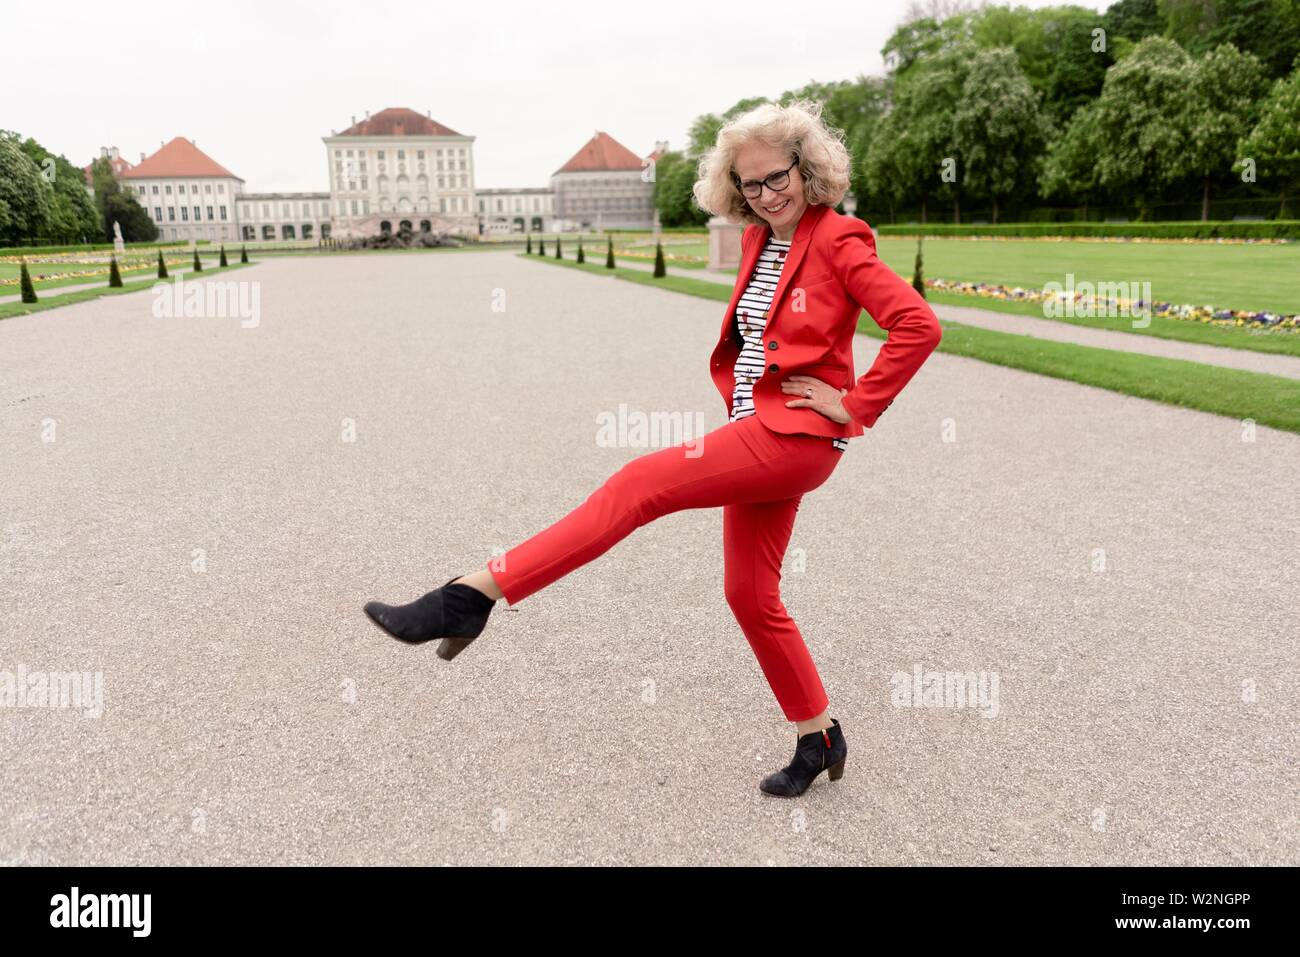 buoyant senior woman (67 years old) shaking leg outdoors in park next to touristic sight Schloss Nymphenburg, in Nymphenburg, Munich, Germany. - Stock Image